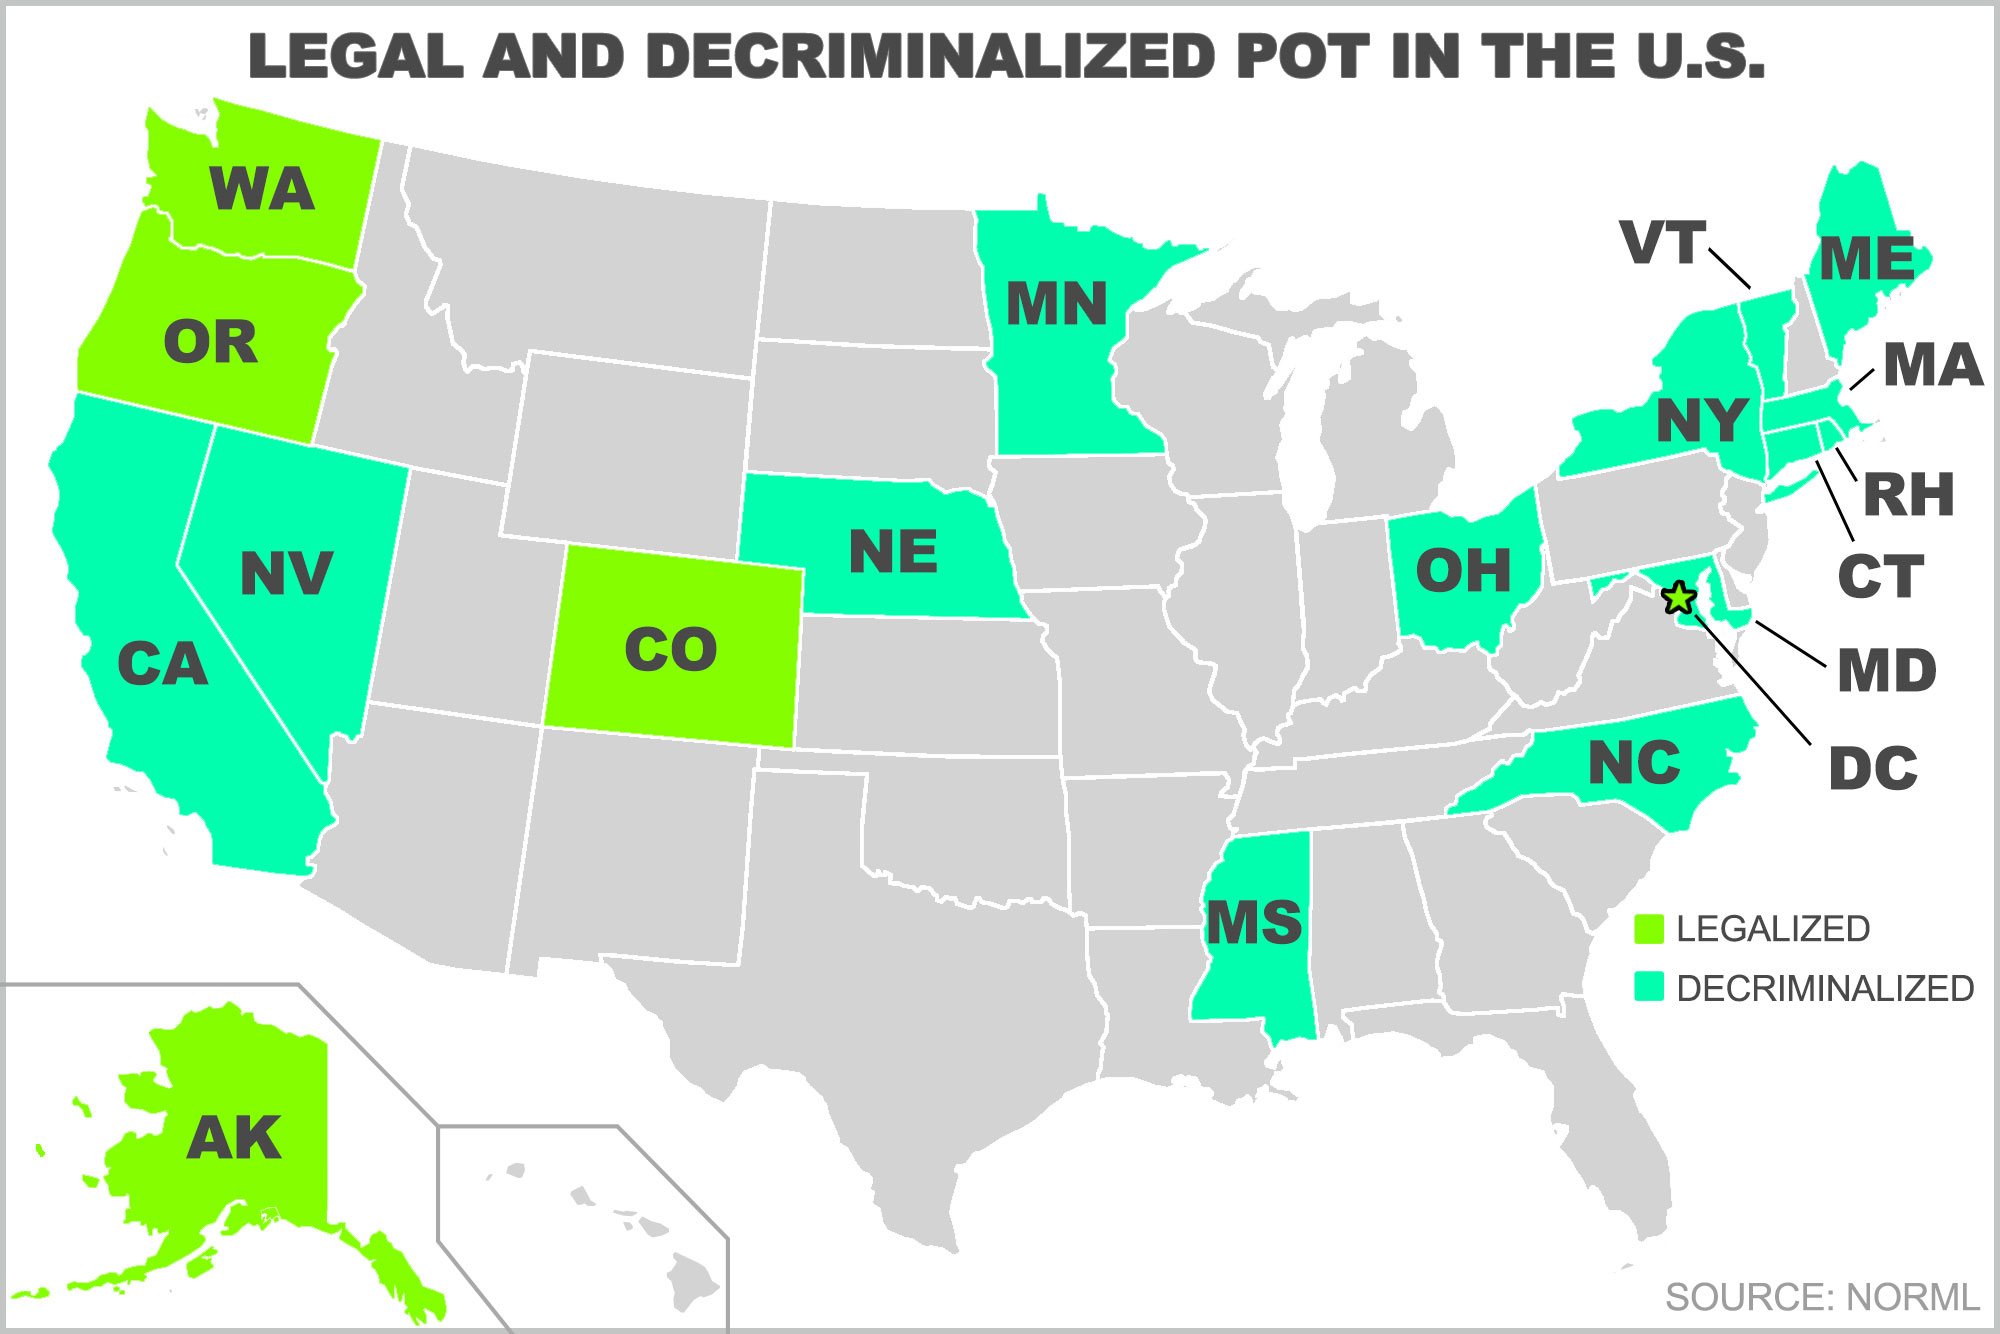 Recent State Legal Developments In Trend Of Decriminalizing